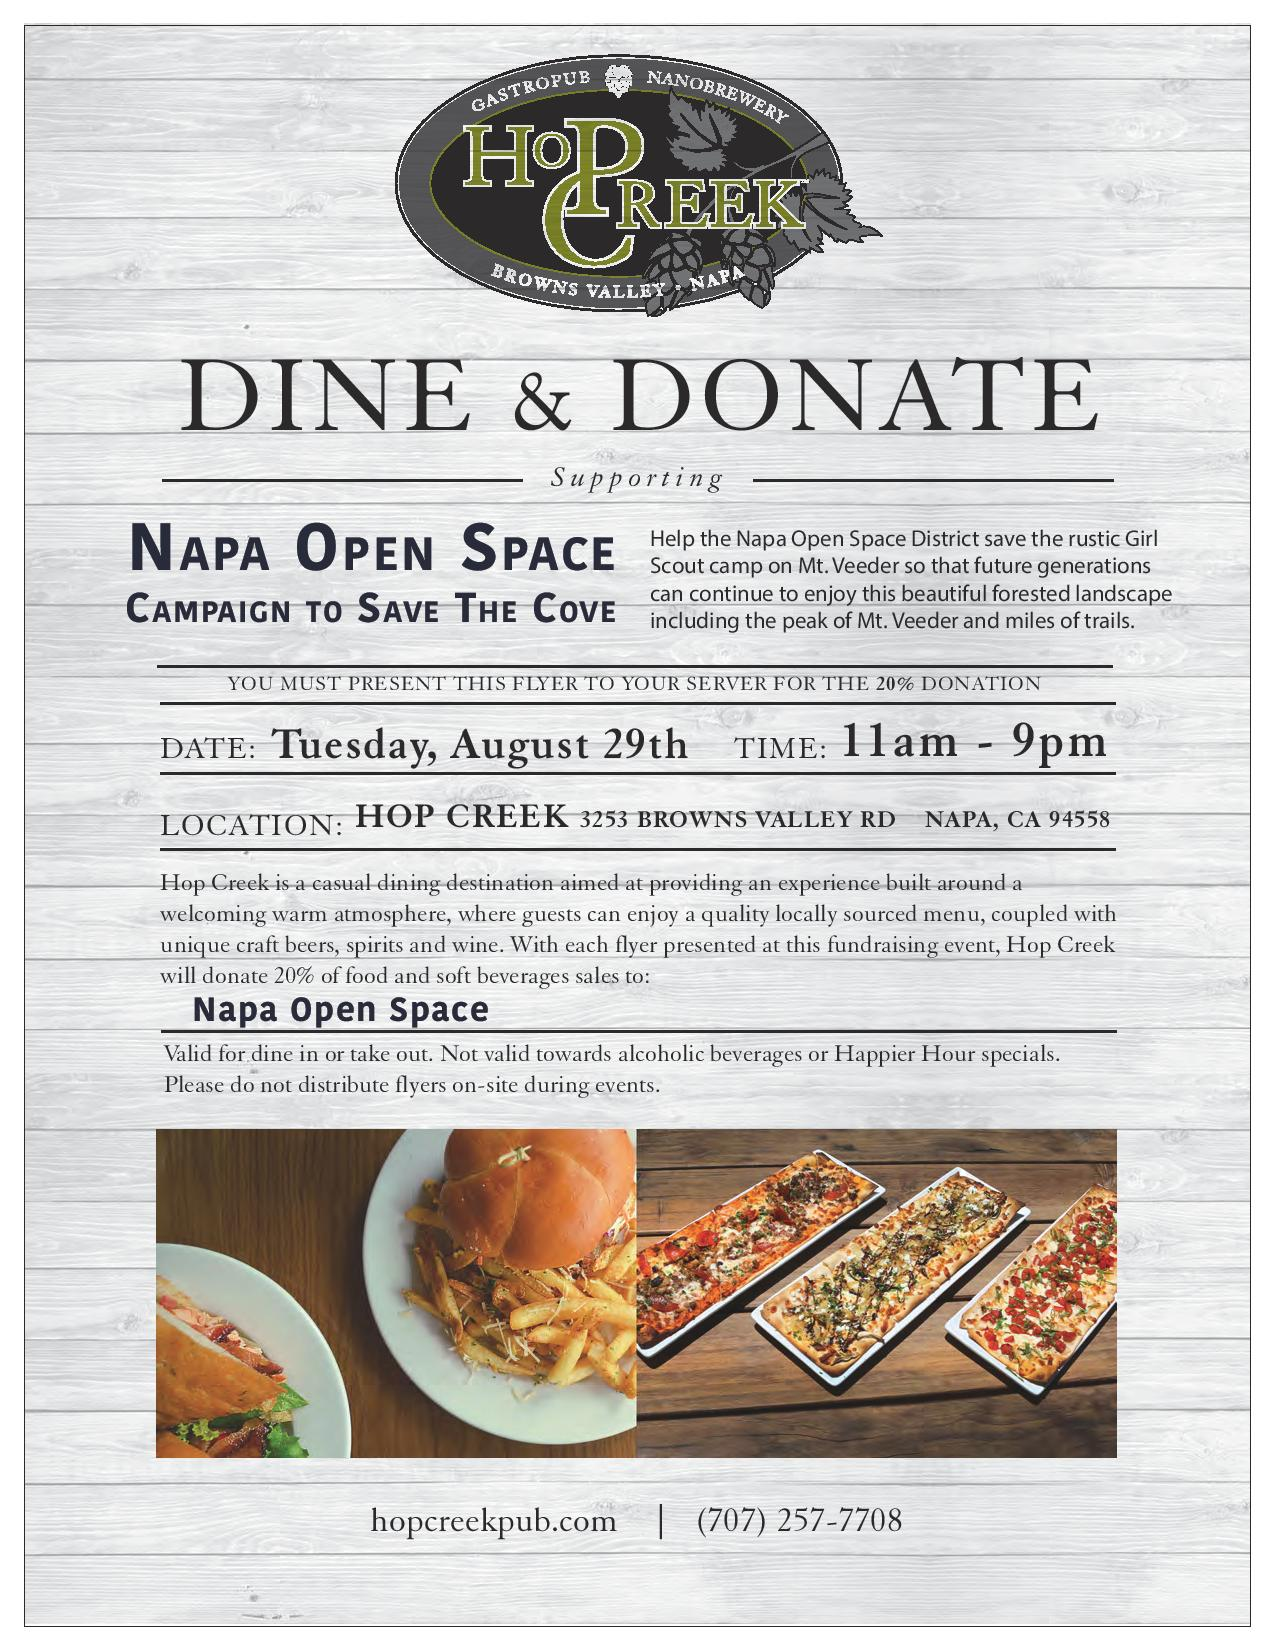 Dine-Donate-Flyer-NapaOpenSpace-page-001